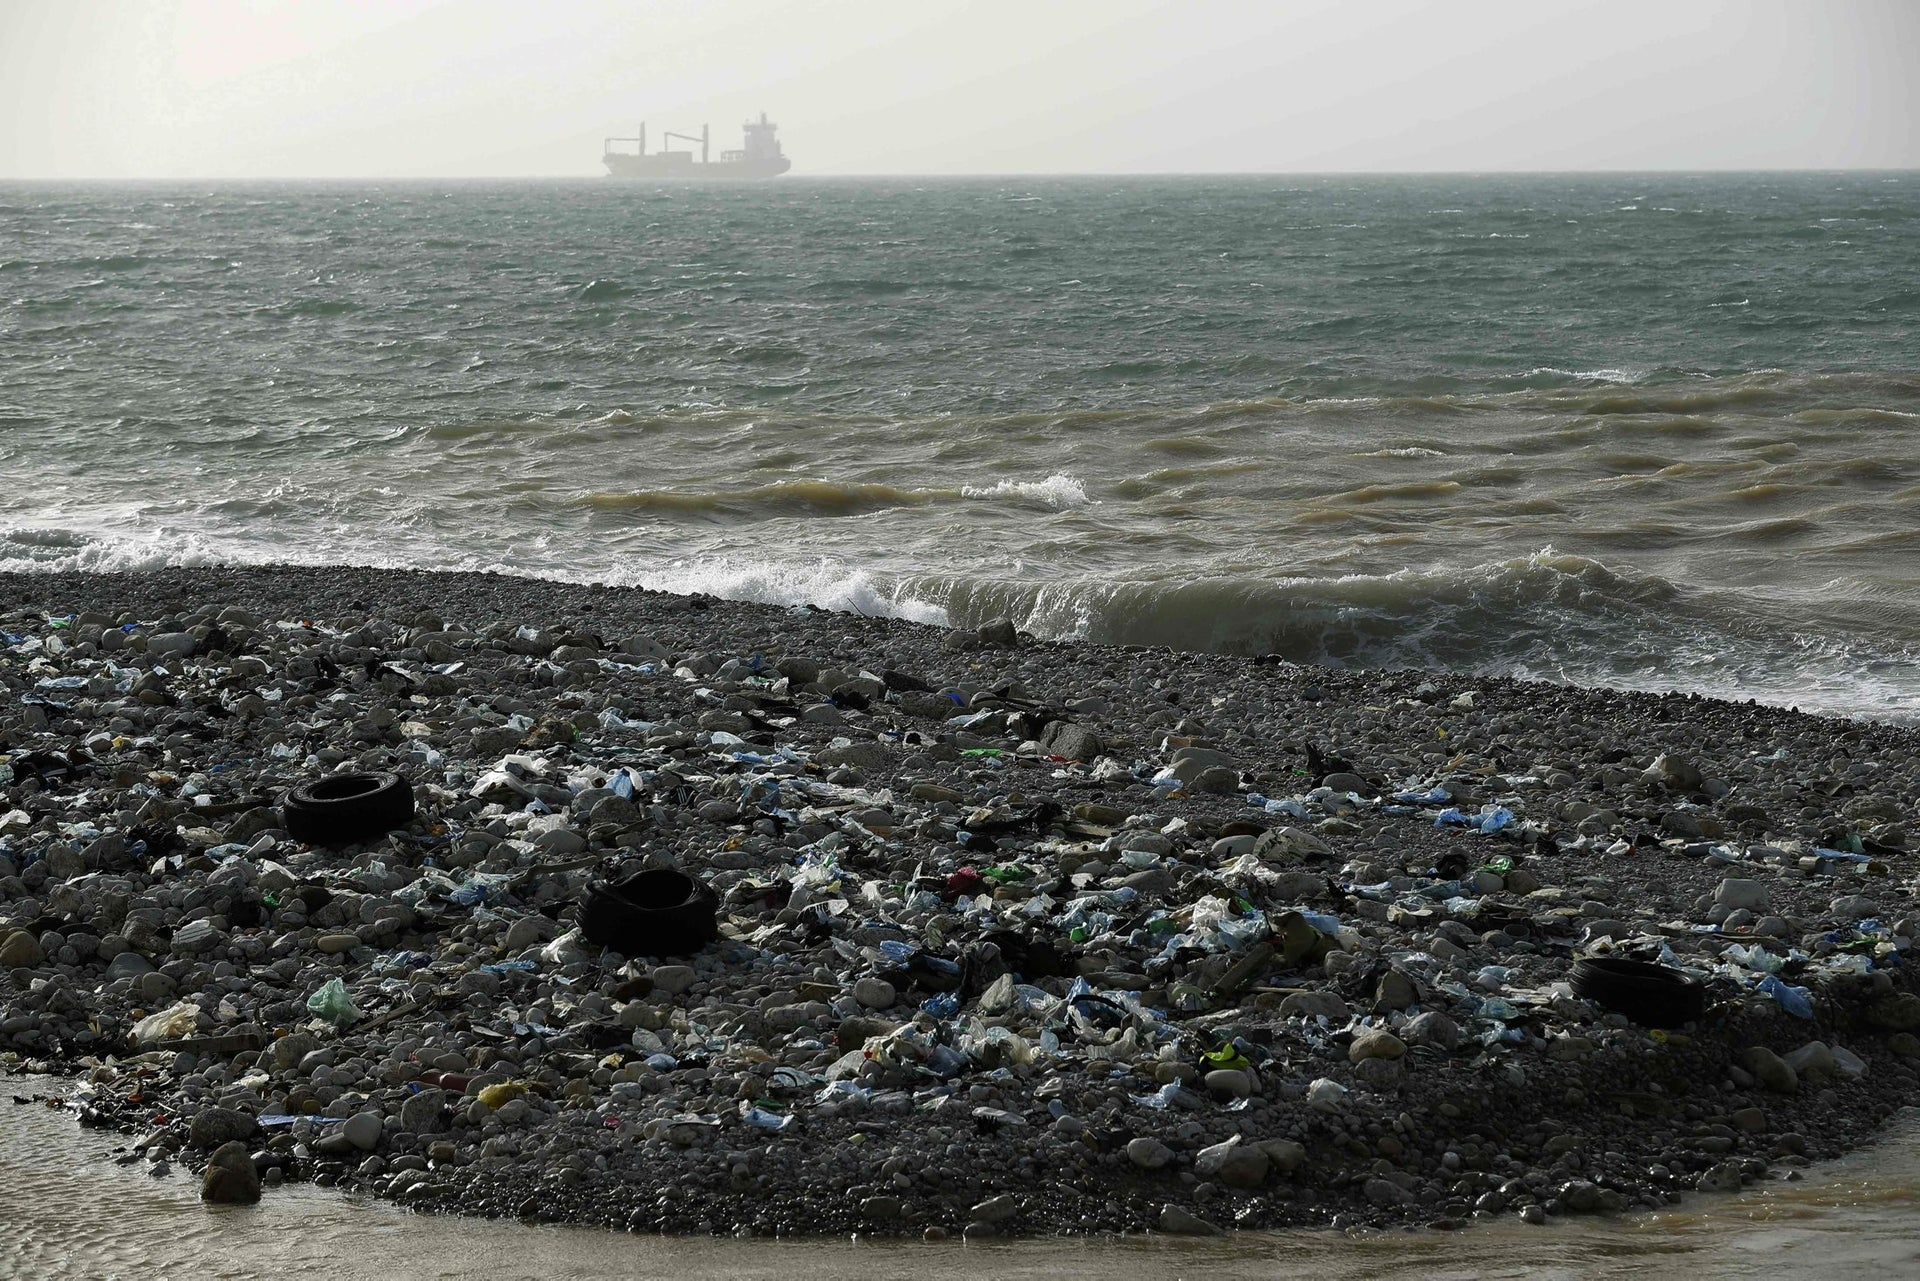 Garbage litters the shore of Zouk Mikael, north of the Lebanese capital Beirut, on January 22, 2018.